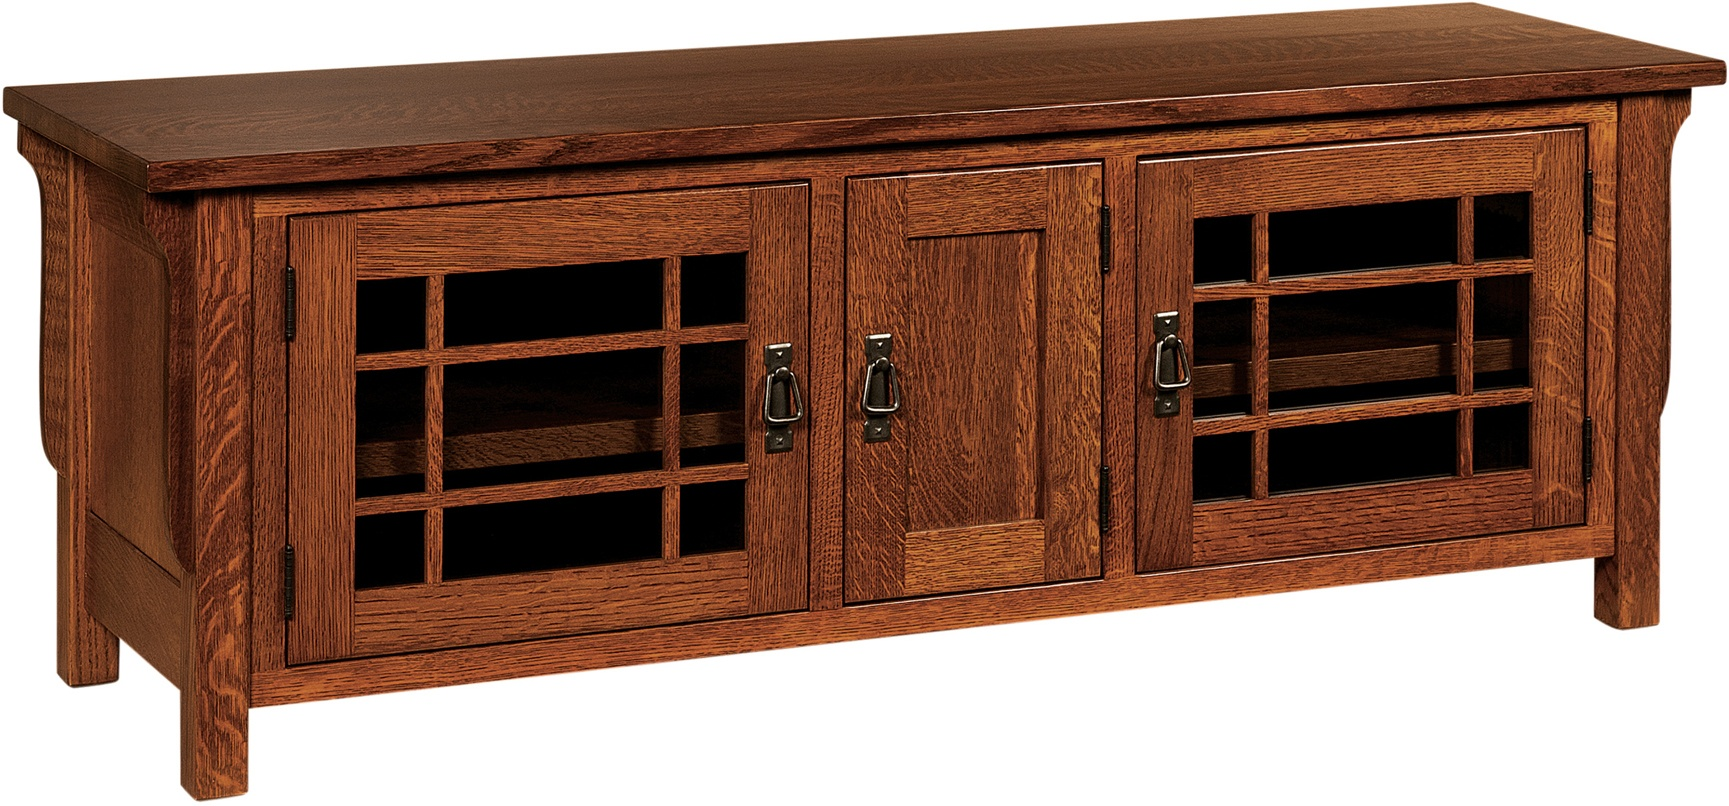 Landmark 21 Inch Height TV Cabinet Collection